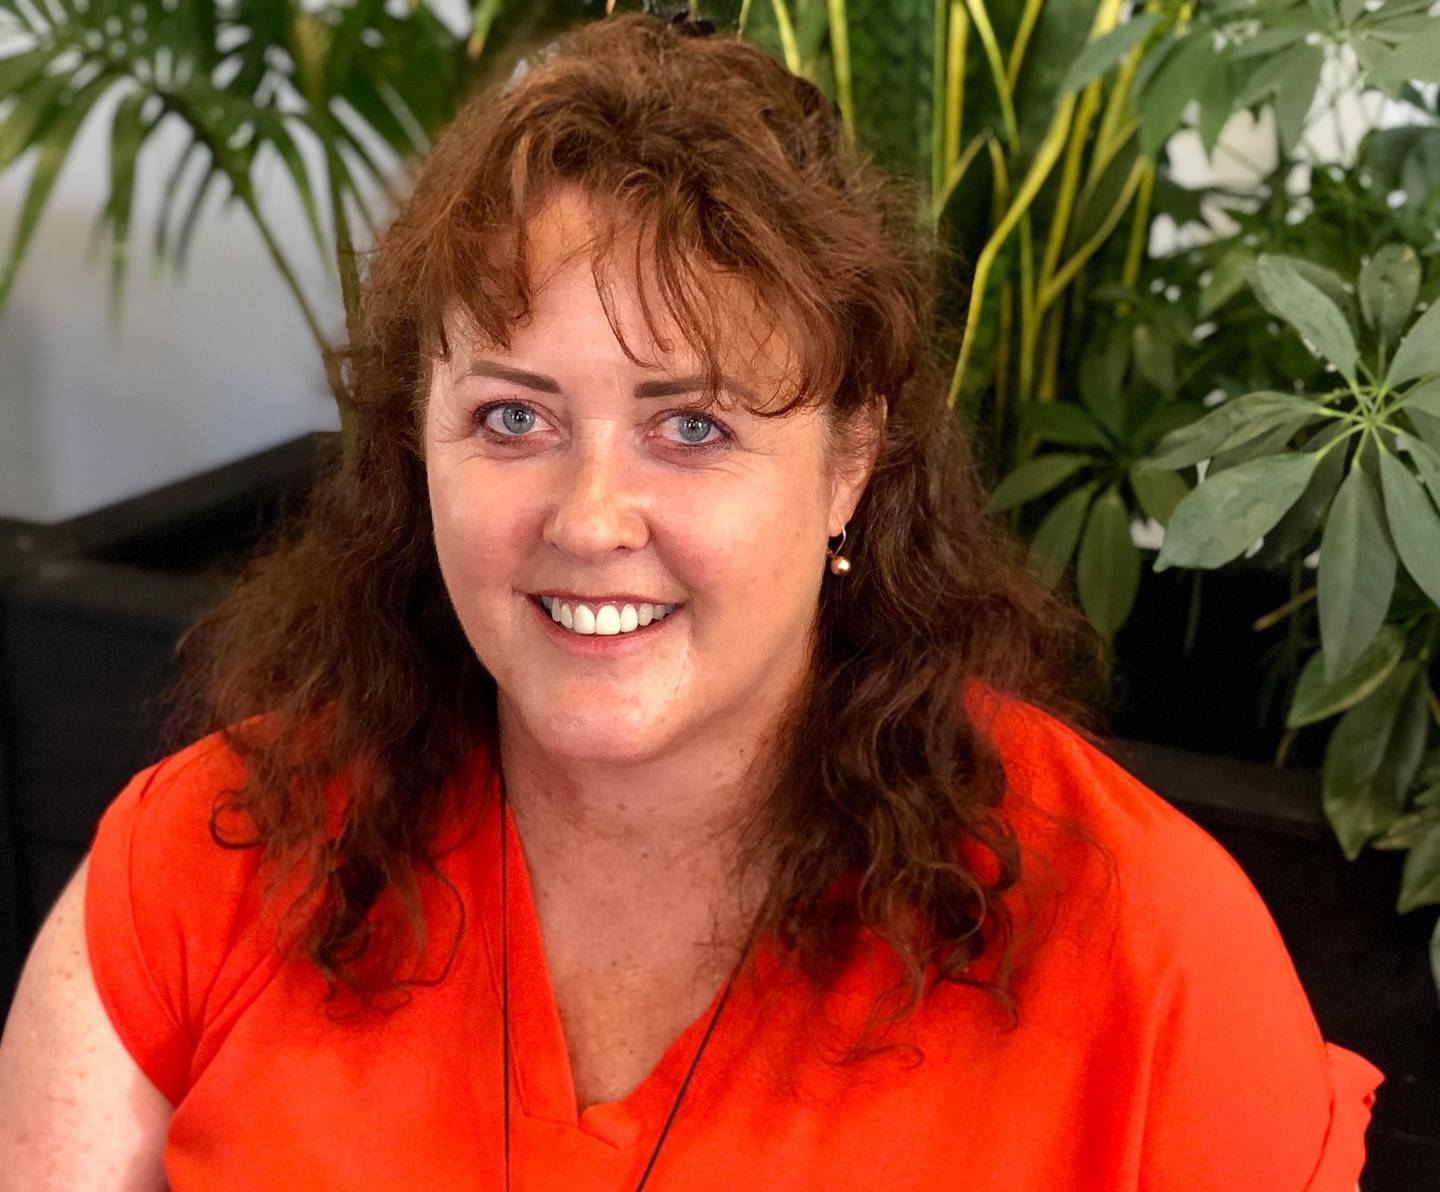 Kaitaia Business Association chairwoman Andrea Panther says the women's actions have had expensive repercussions for Northland businesses, already struggling.